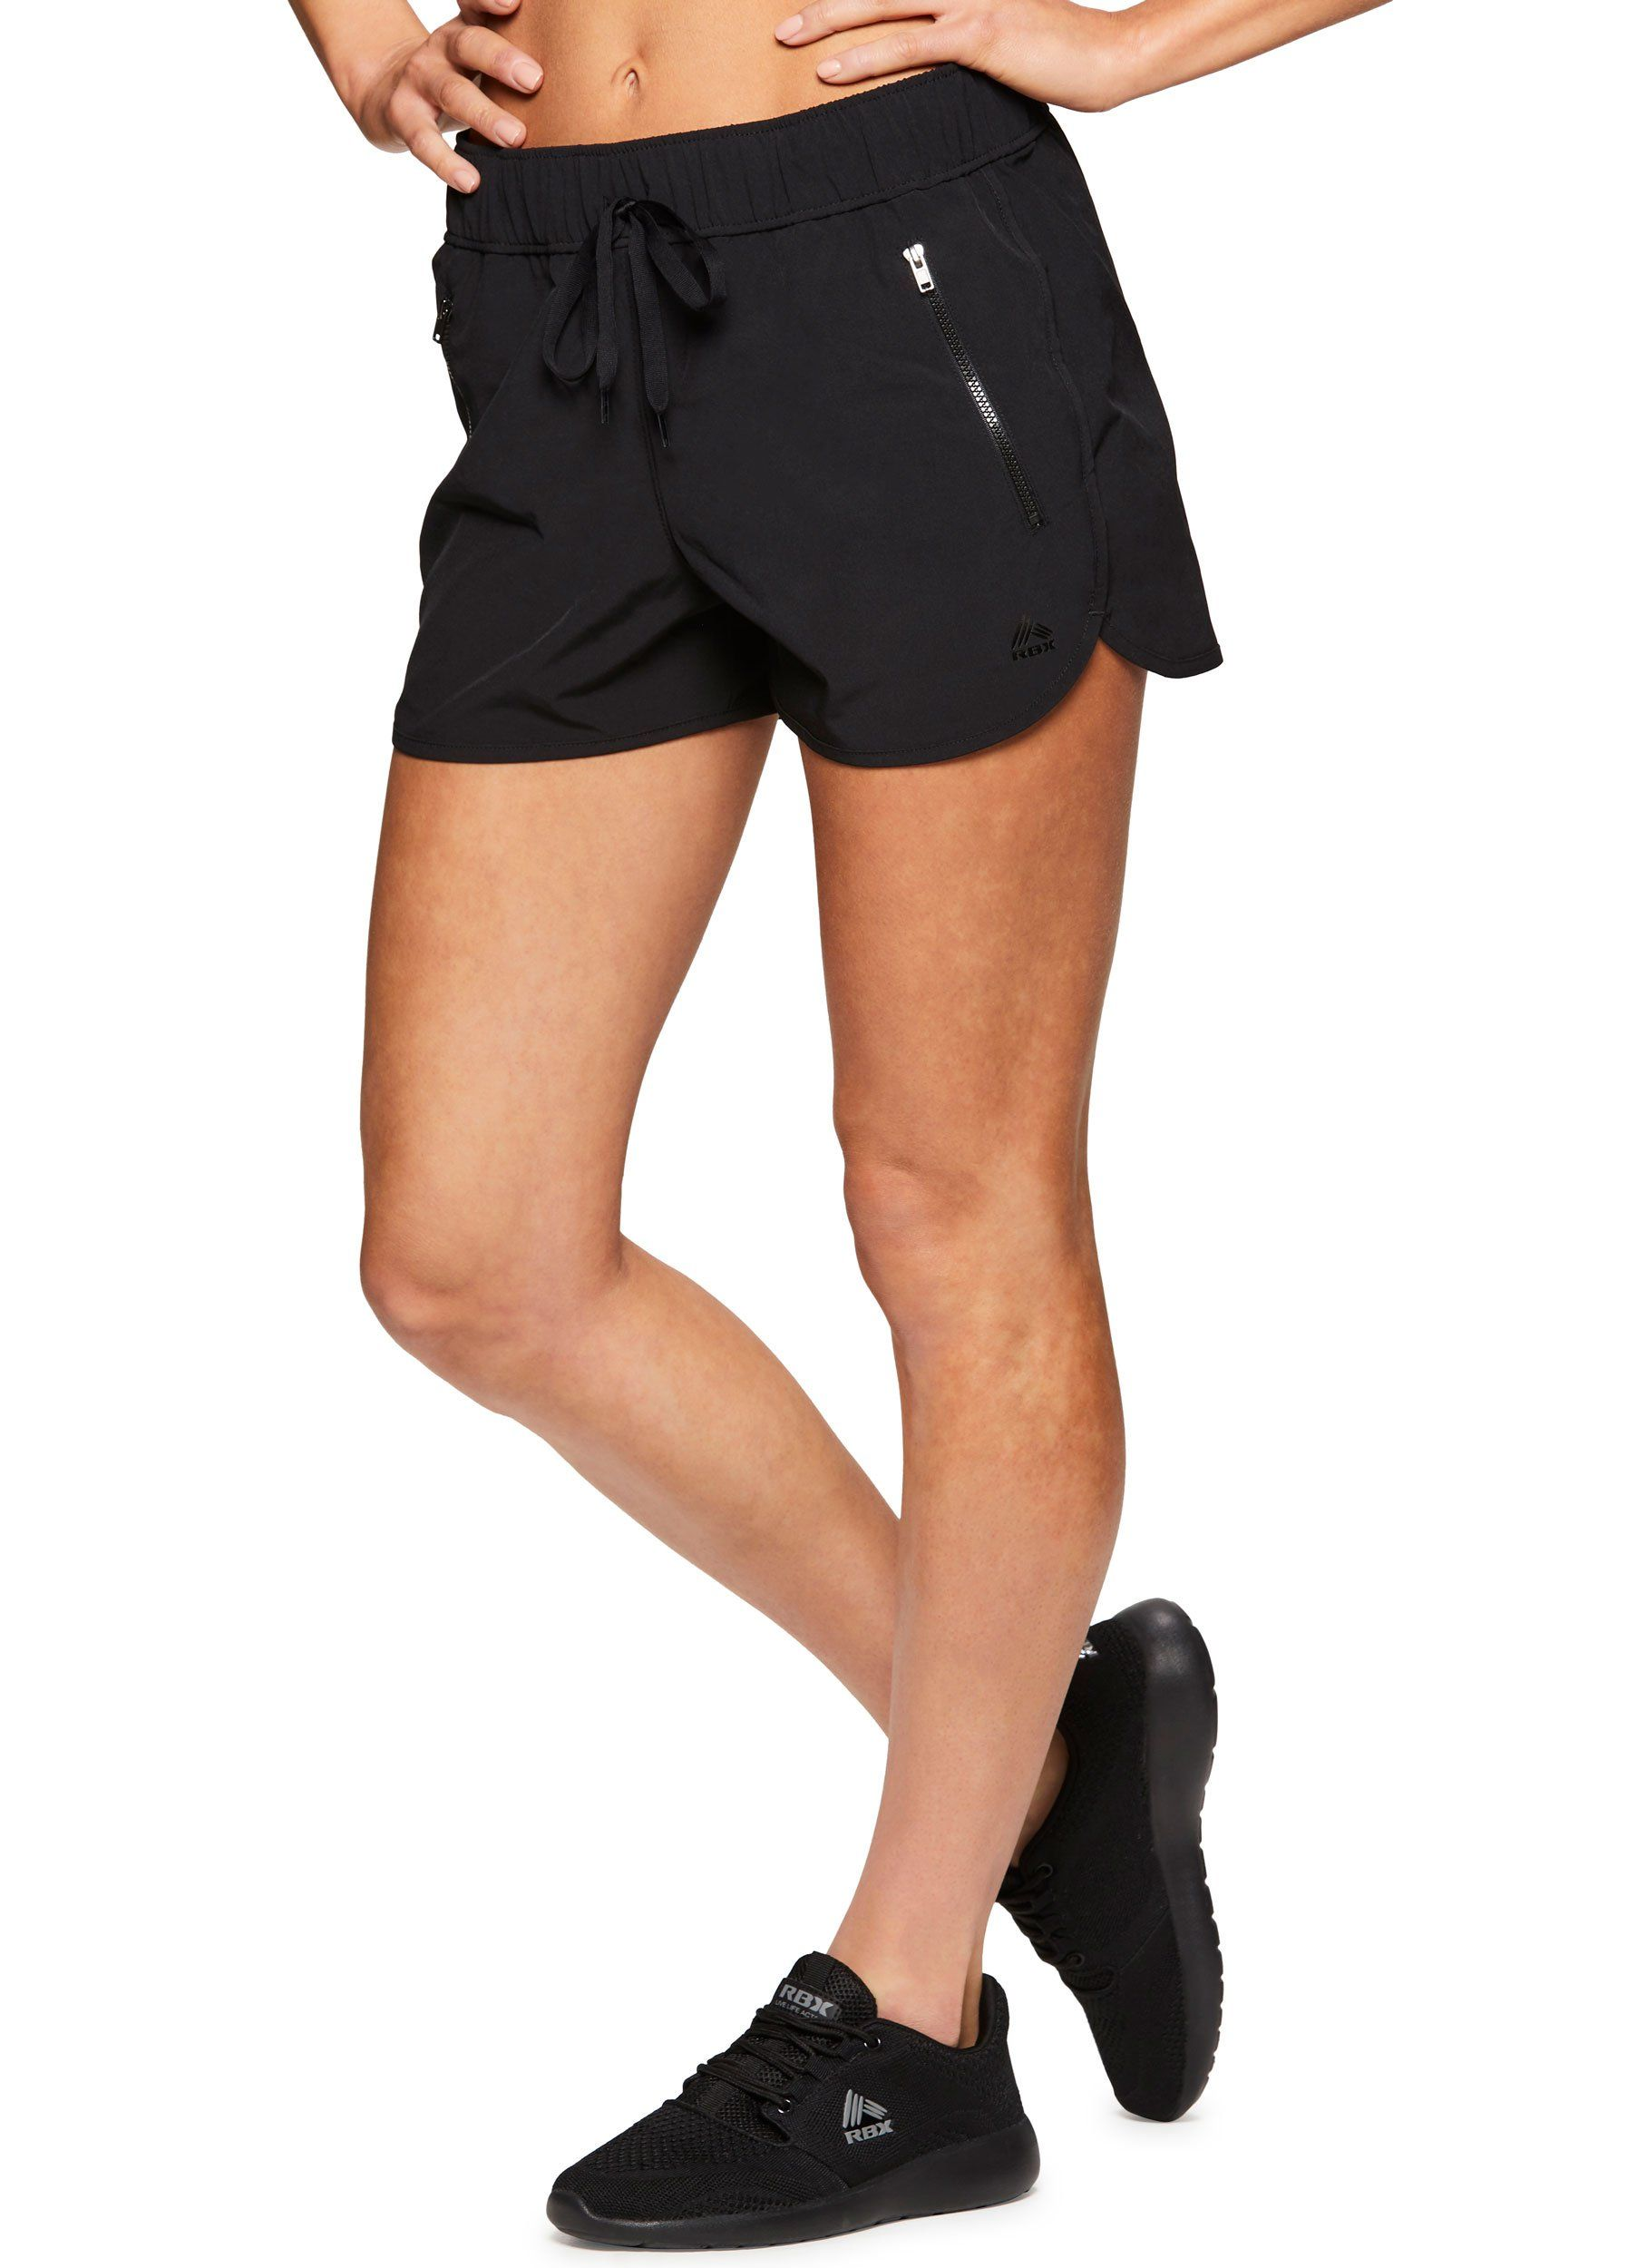 a32949d1c3d0d Women Golf Clothing - RBX Active Womens Workout Gym Running Shorts Shining  Black L